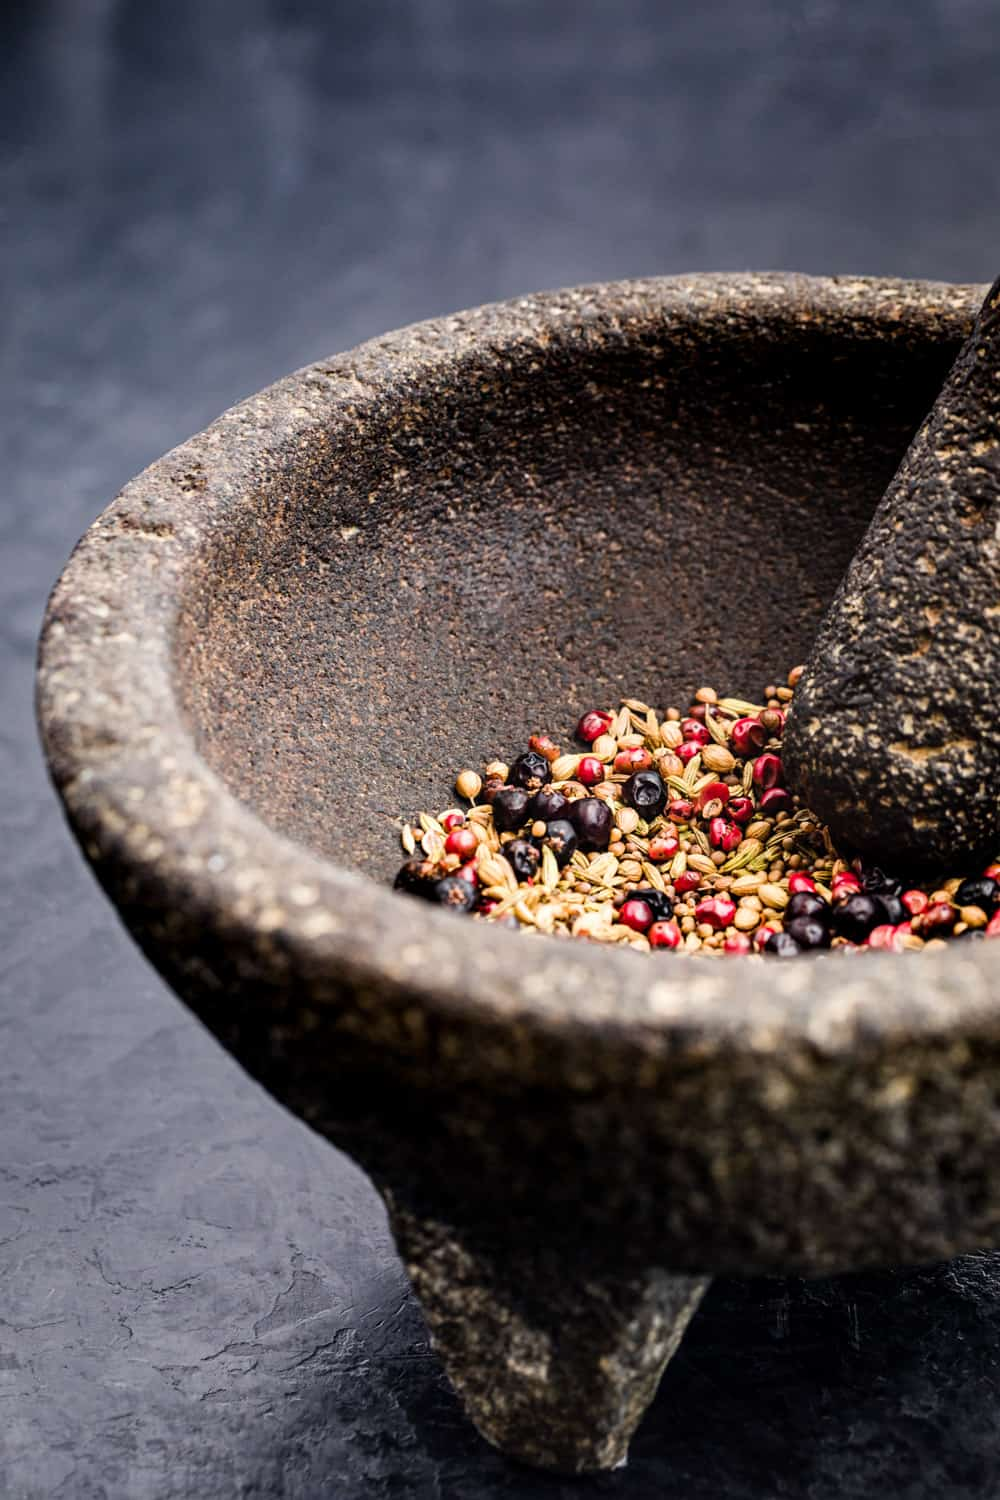 Whole spices, pink peppercorns mustard seeds, fennel seeds, juniper berries and coriander in a mortar and pestle ready to be ground up.